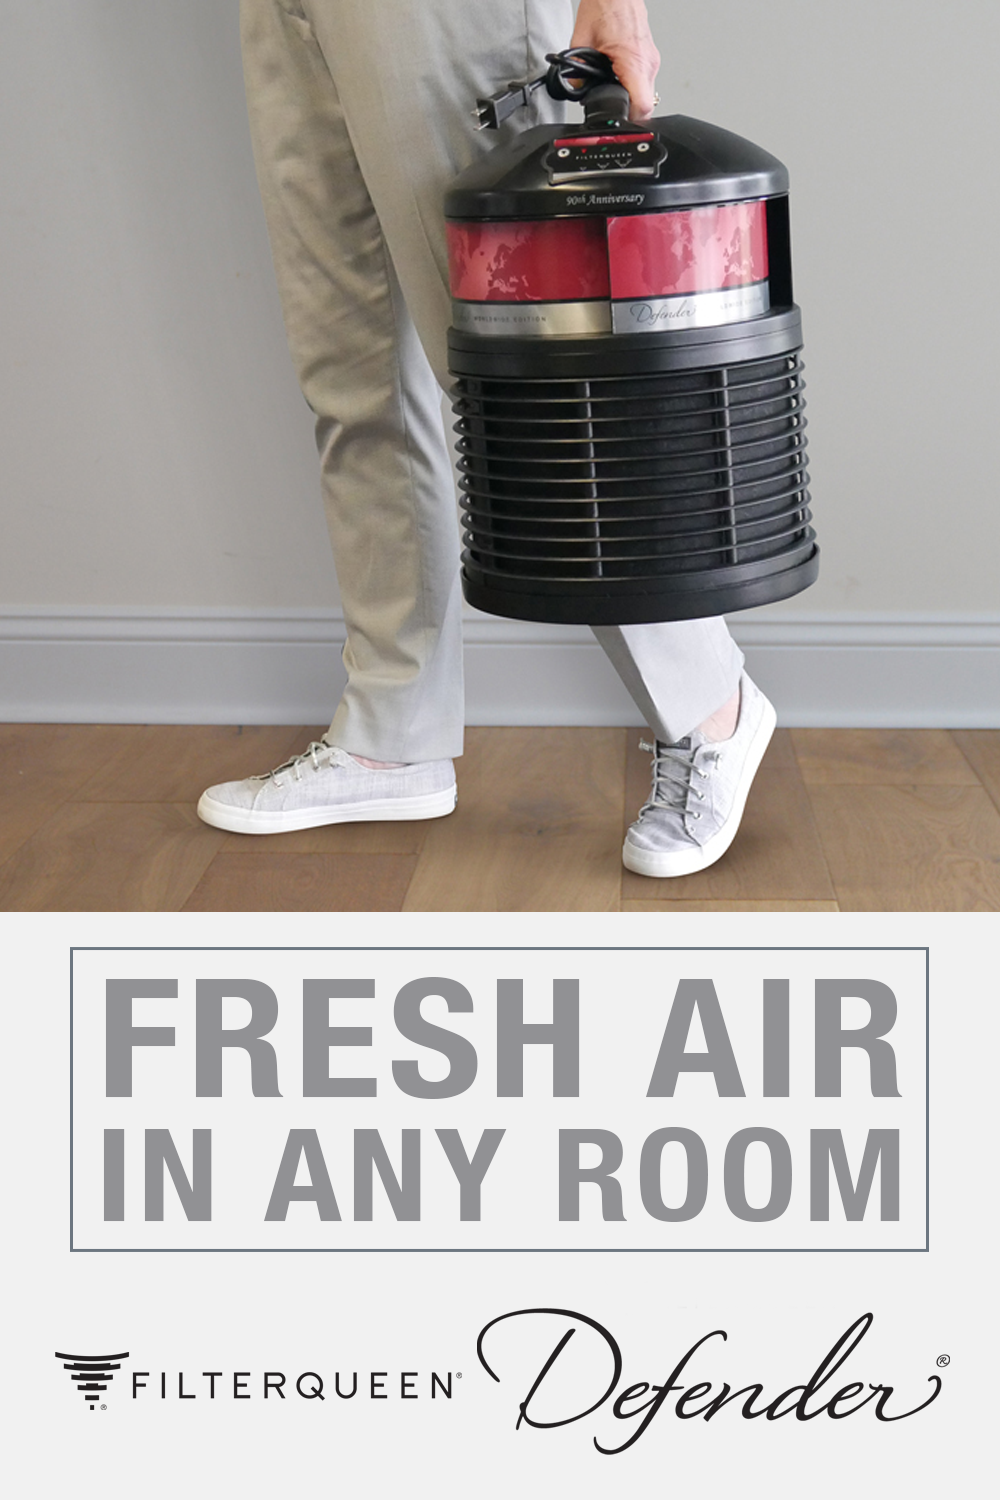 The FilterQueen Defender Air Purifier is designed to be